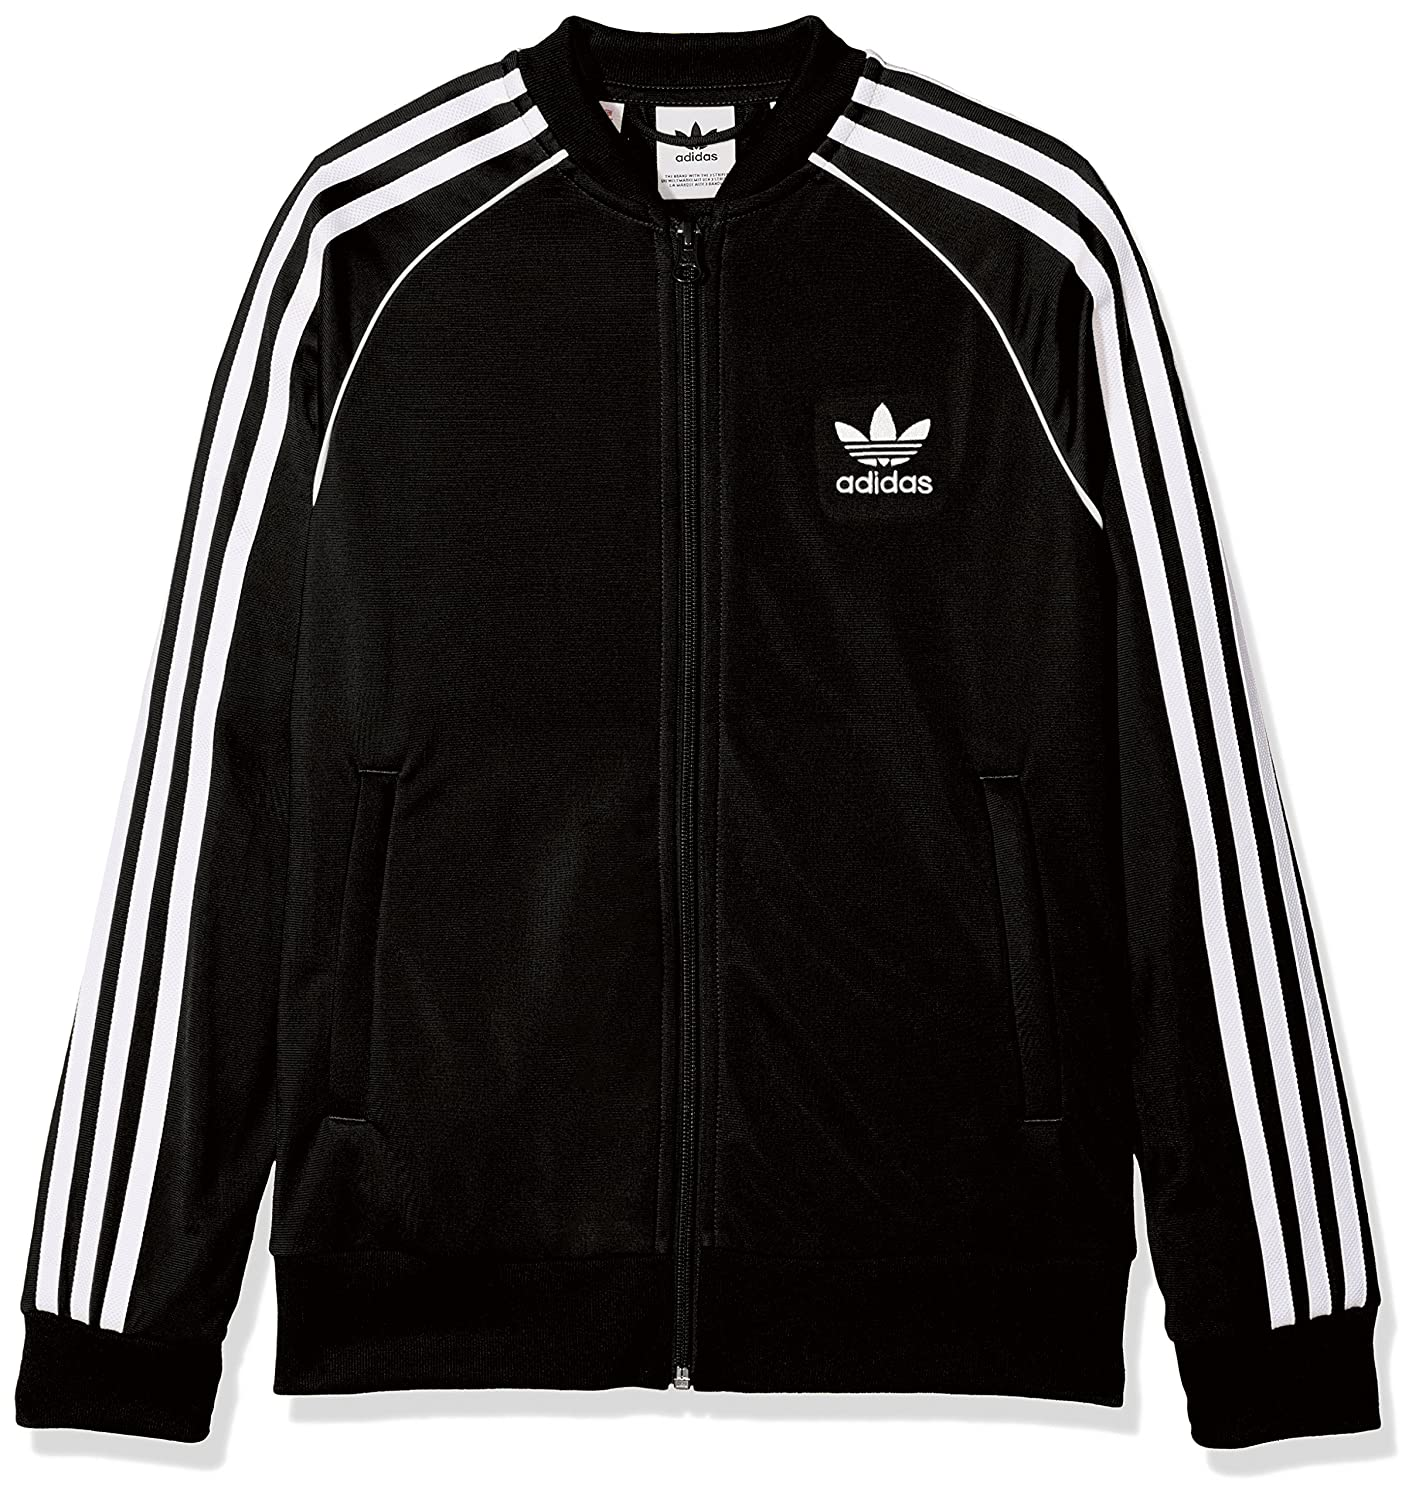 adidas J SST TOP, Giacca Unisex Bambini